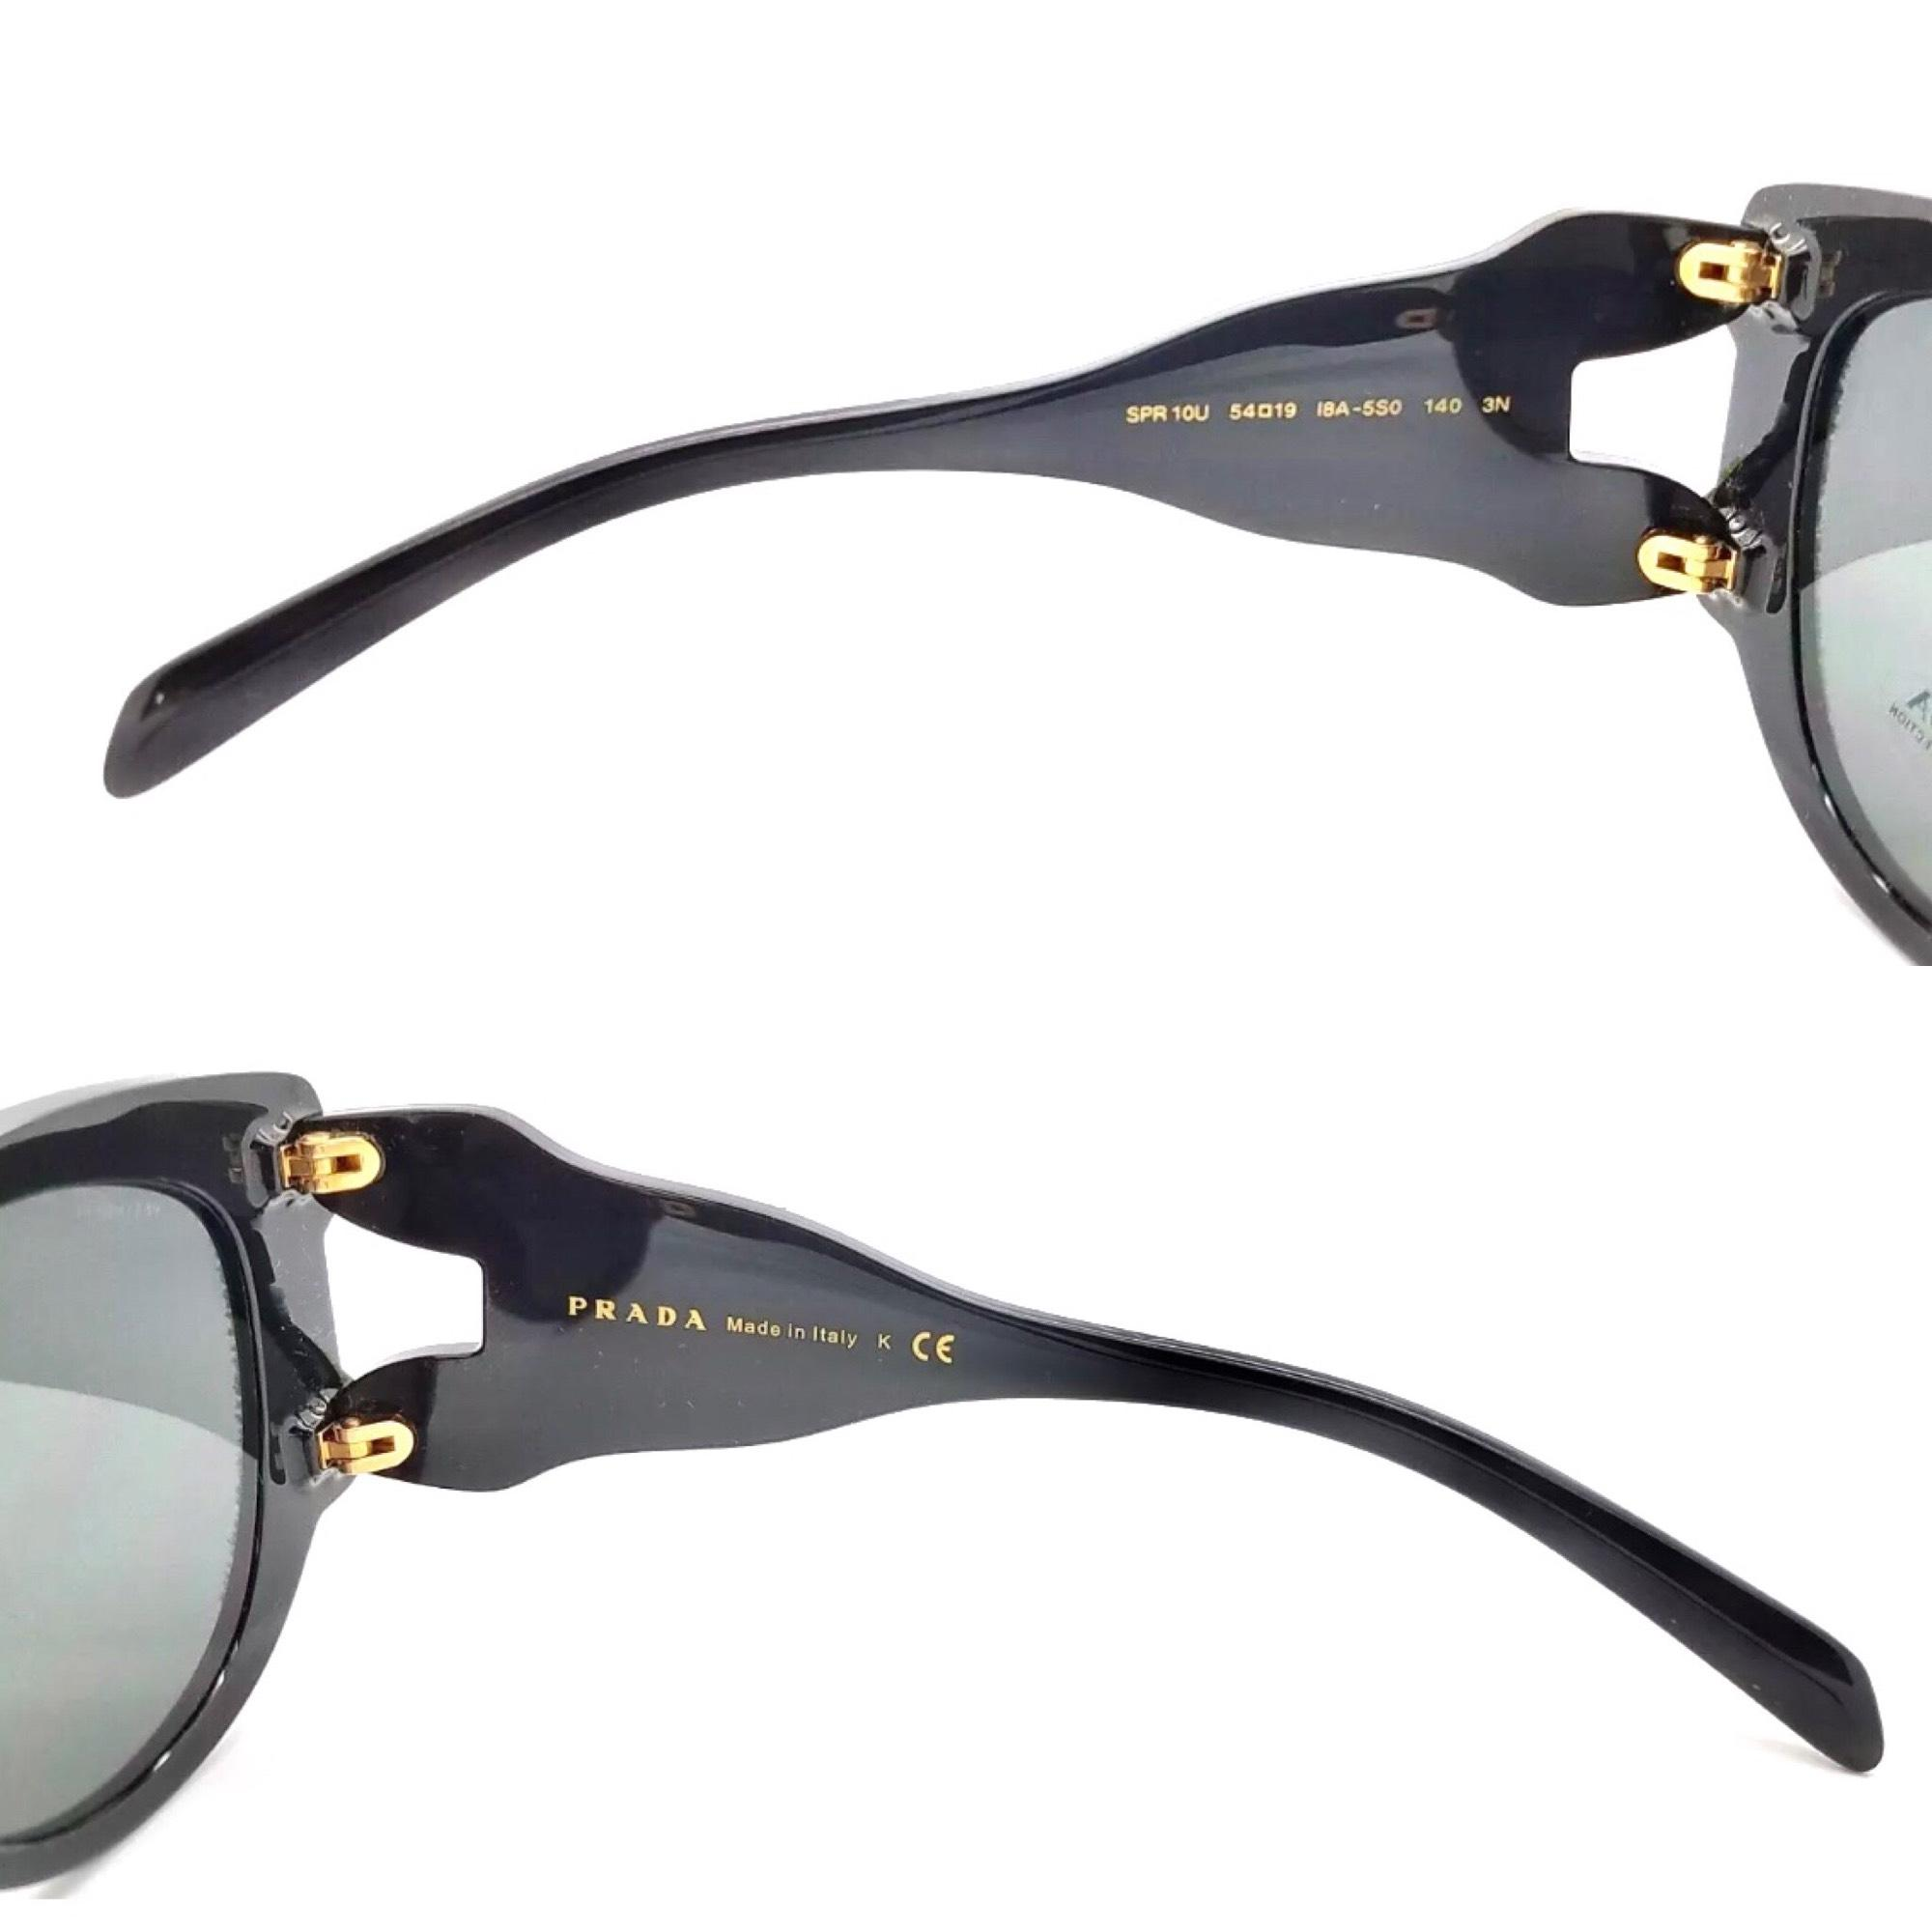 f2140a156427 ... black 4568a 8b7c0 sale prada blue green yellow butterfly velvet sunglasses  tradesy 38cd4 dd409 ...